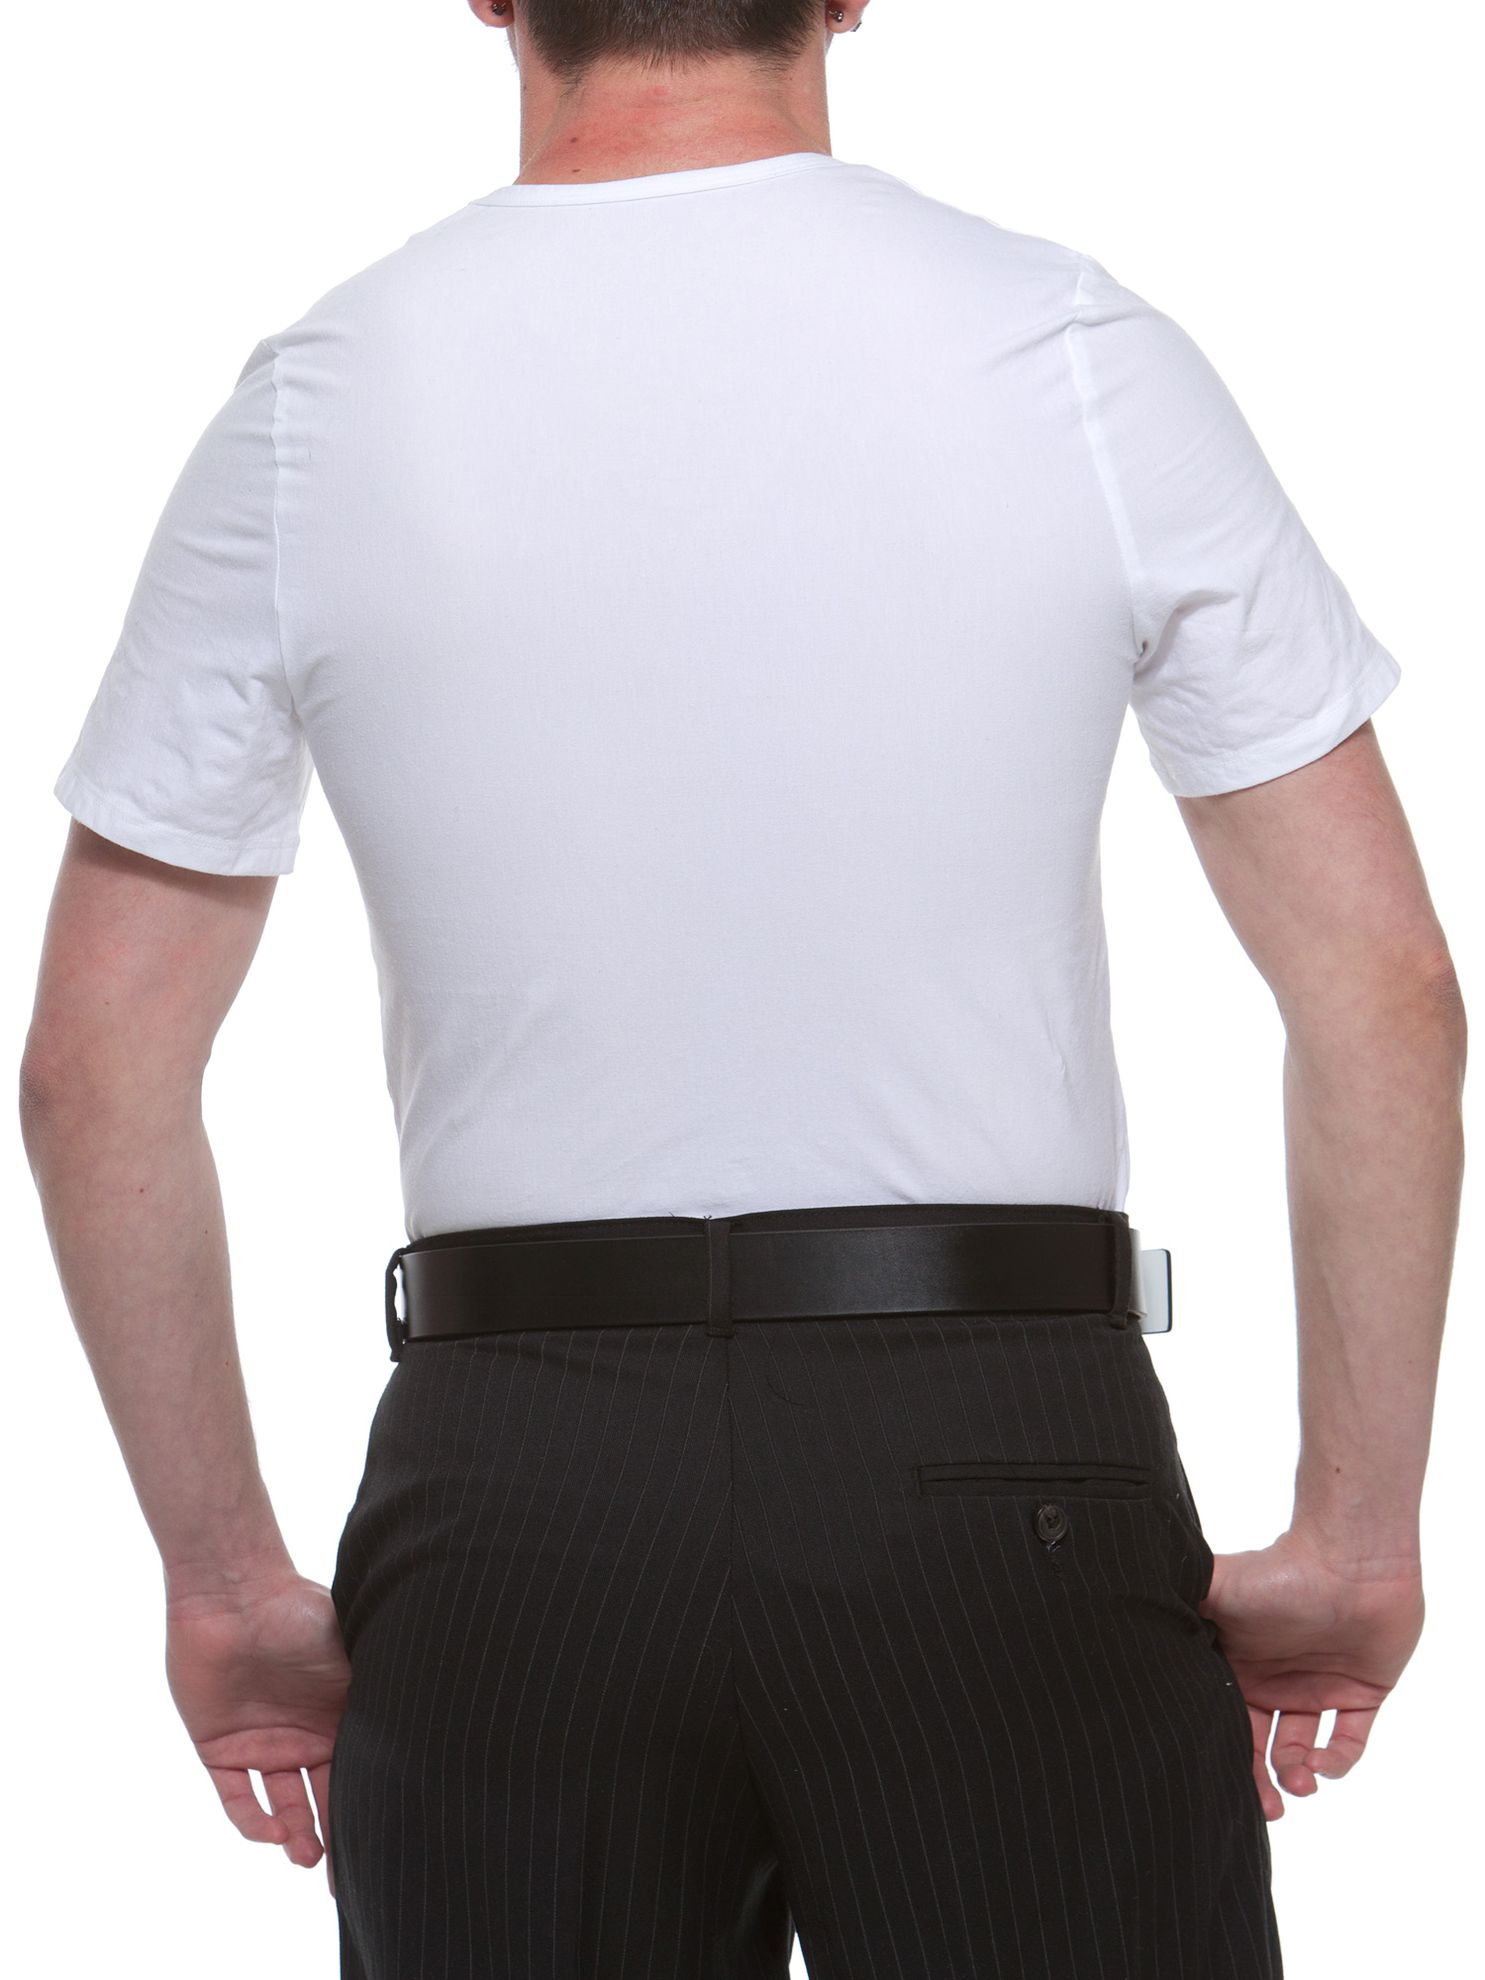 Underworks Manshape Tummy Trimming and Torso Shaping Compression Shirt